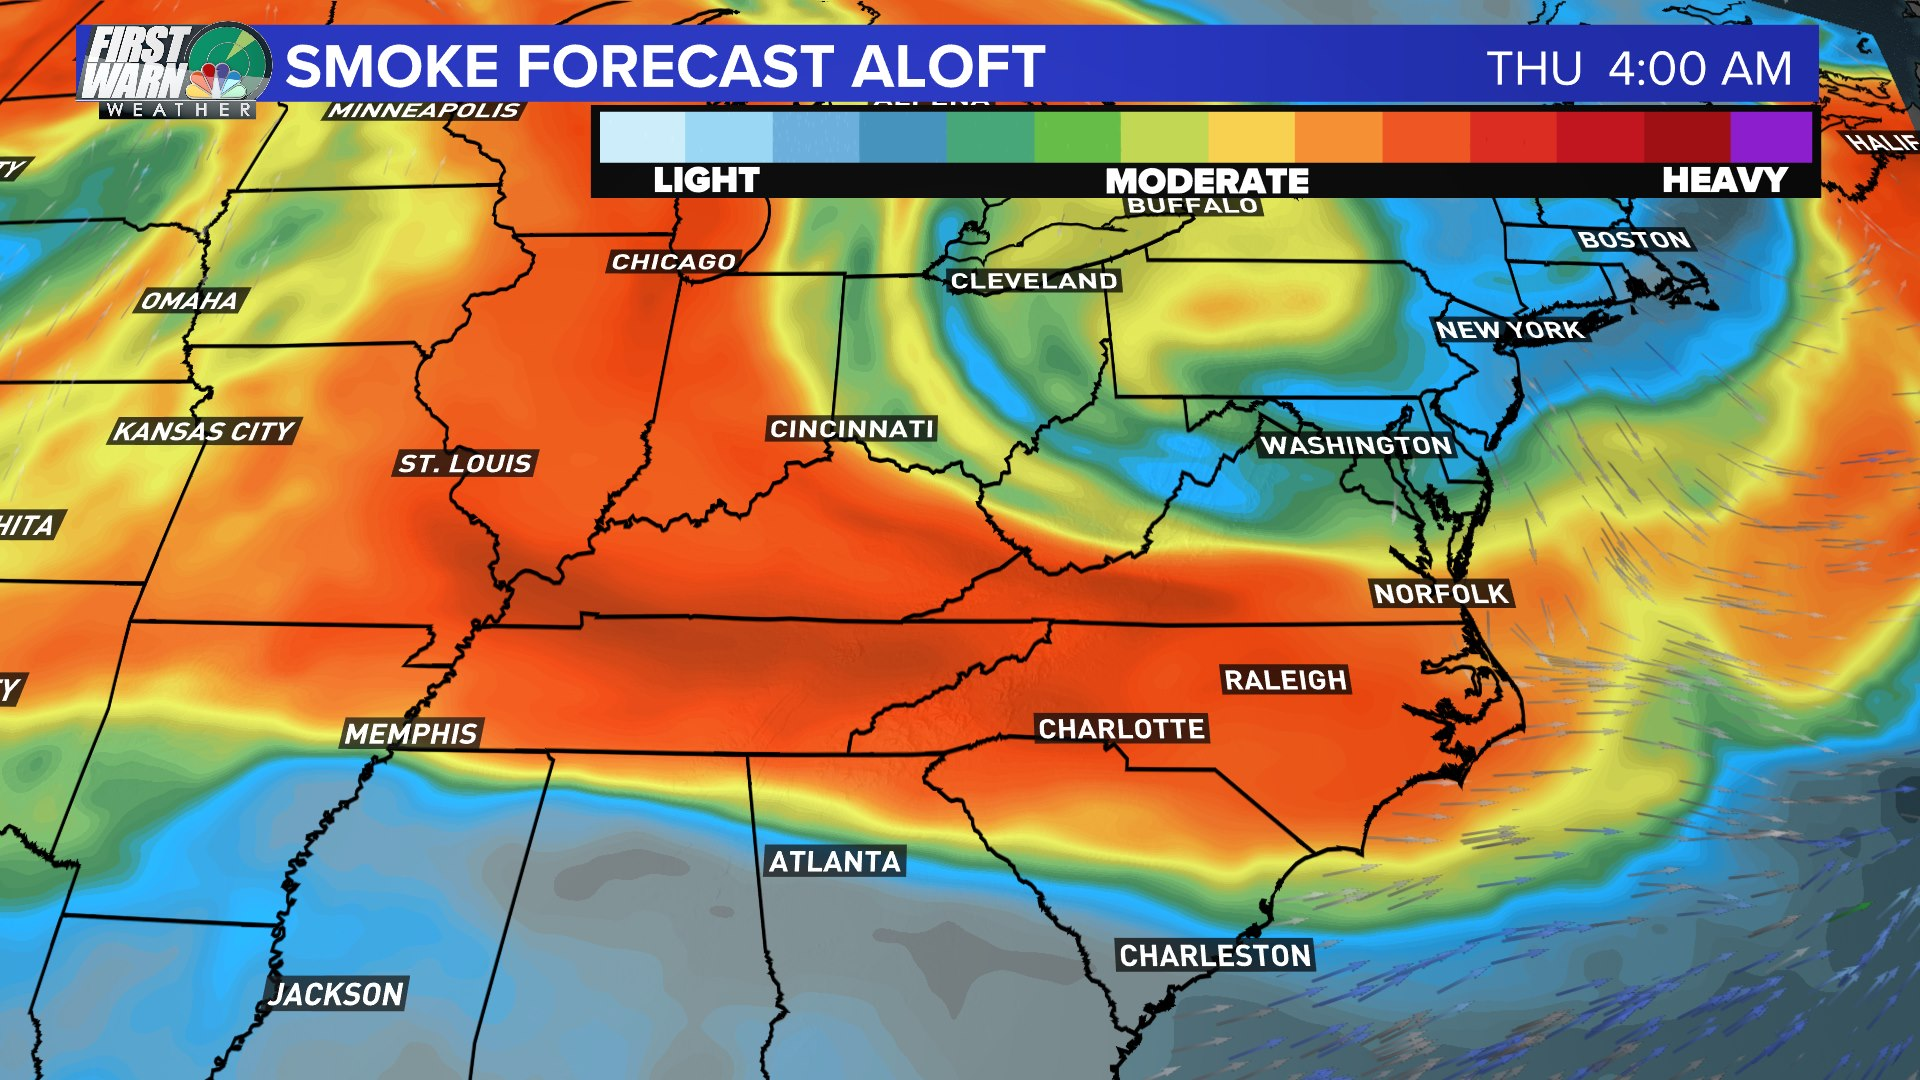 Smoke from wildfires out west in High Country, North Carolina and East Coast